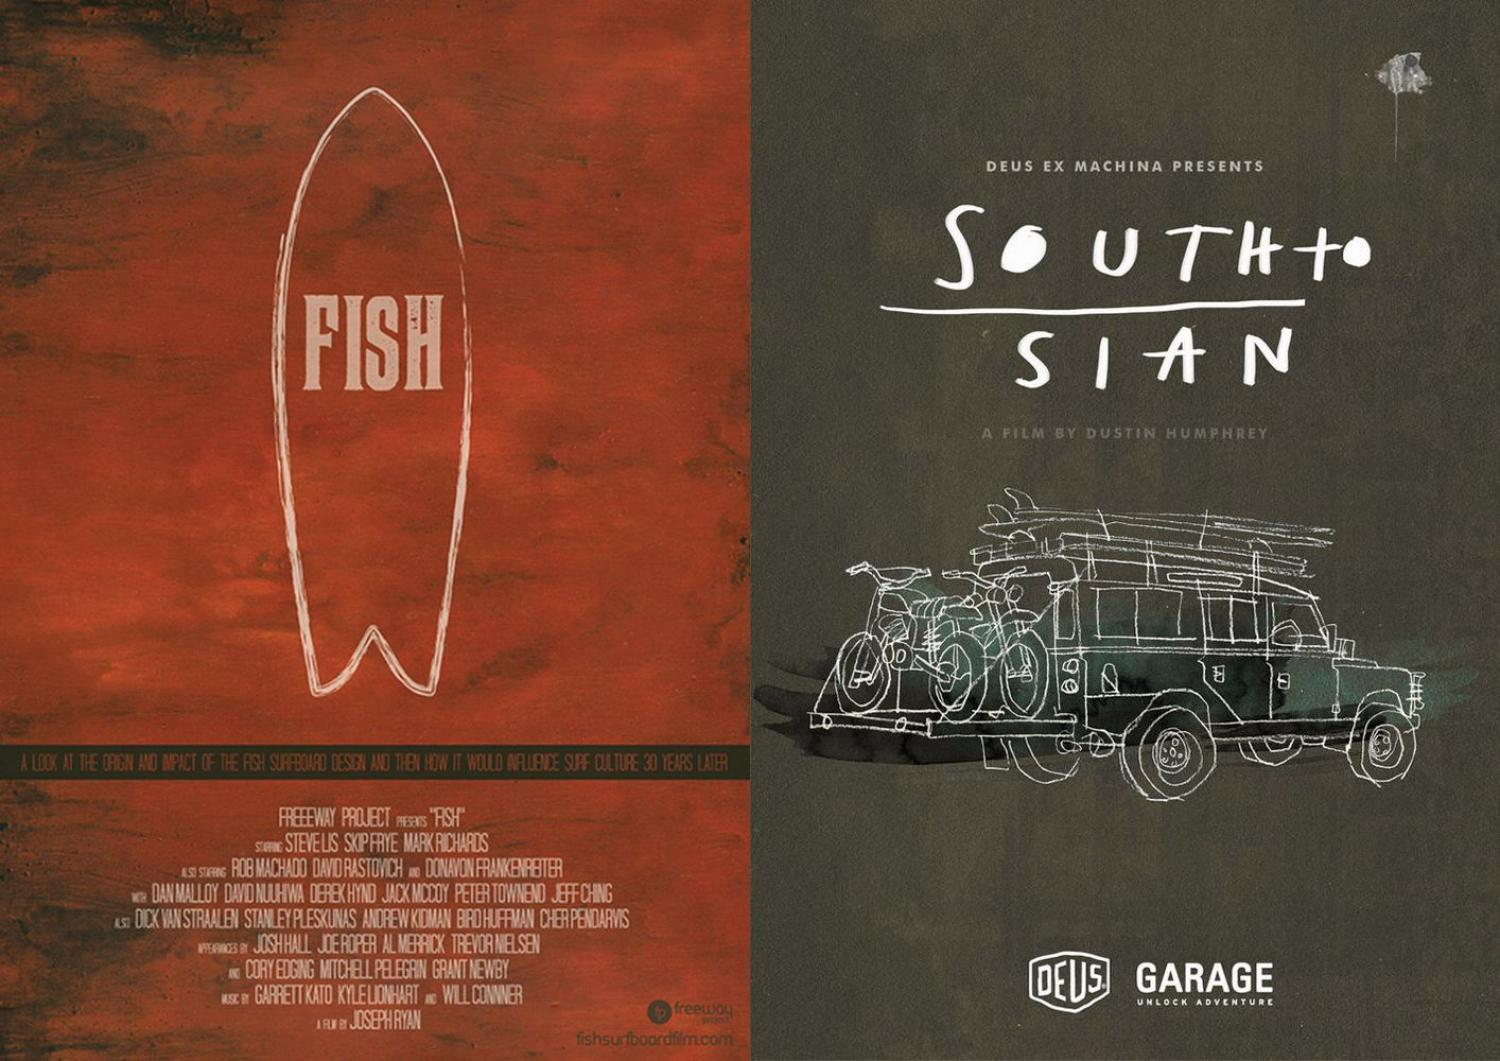 DVD『SOUTH TO SIAN』、『 FISH 』最終入荷!!